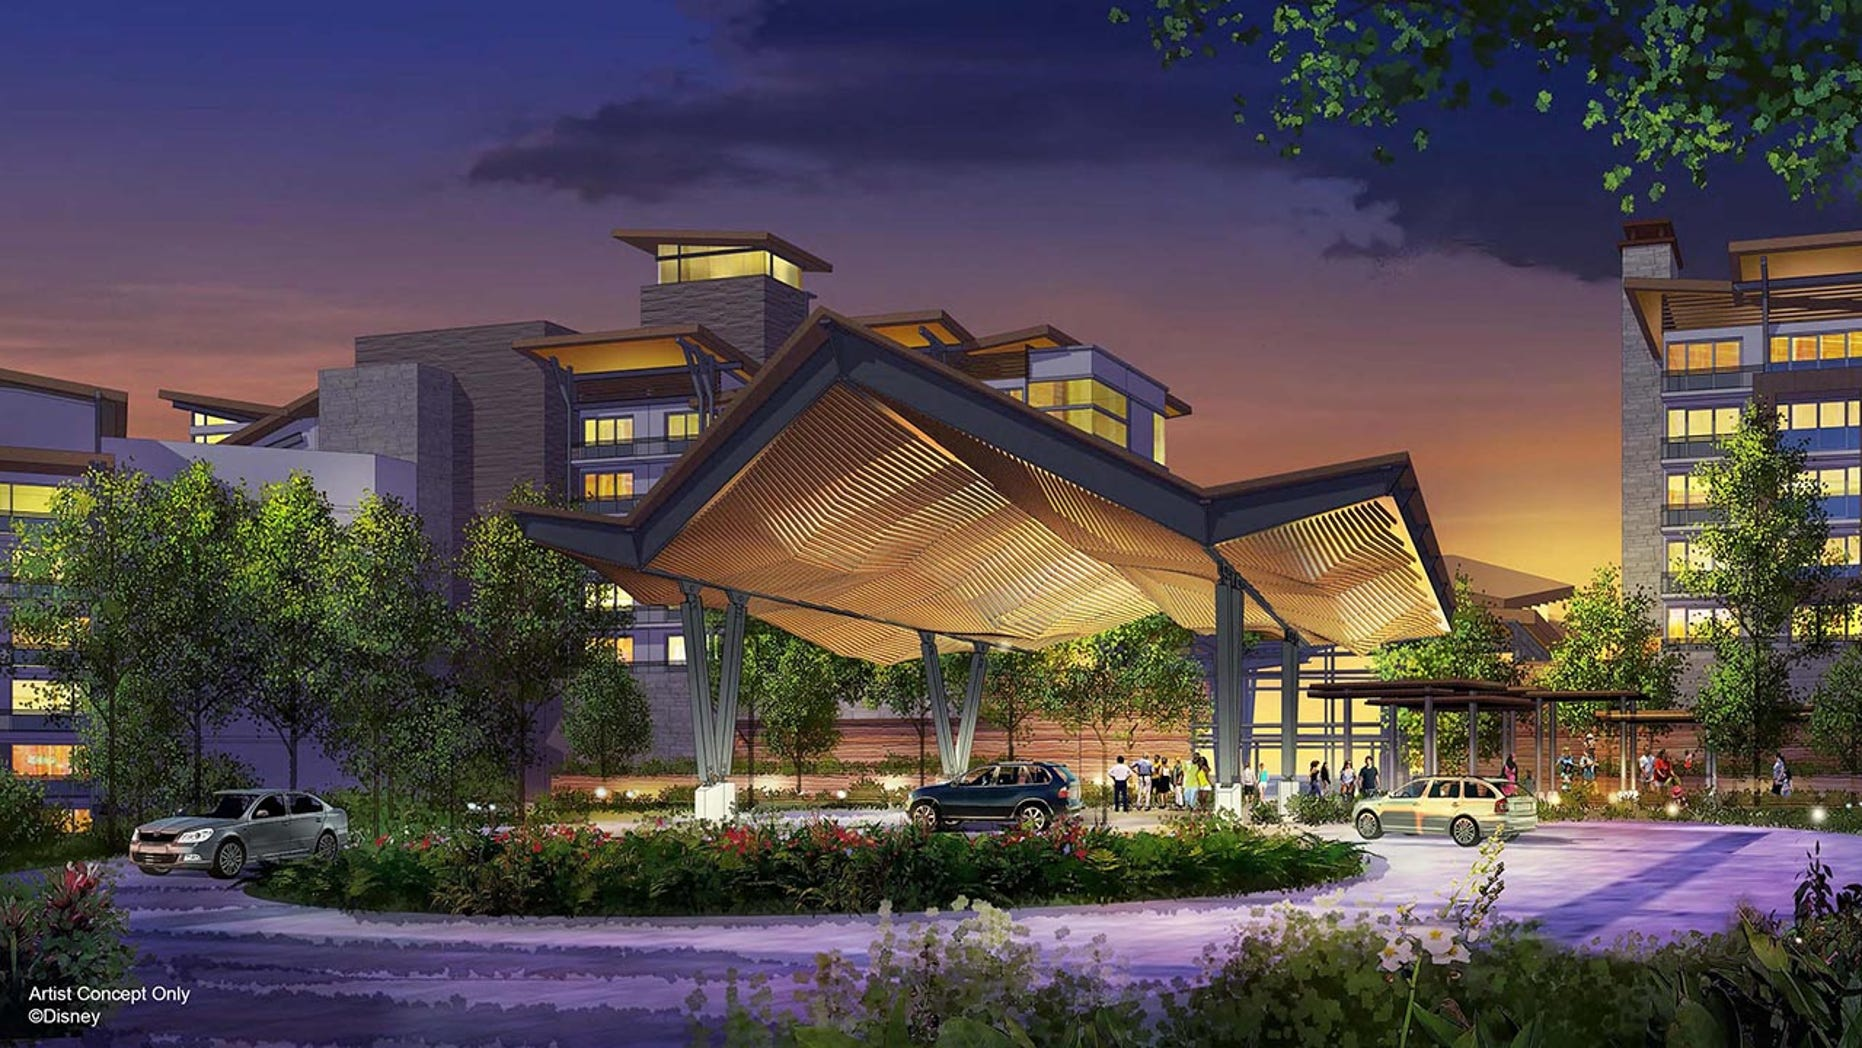 Walt Disney World announces new deluxe, nature-inspired resort for 2022